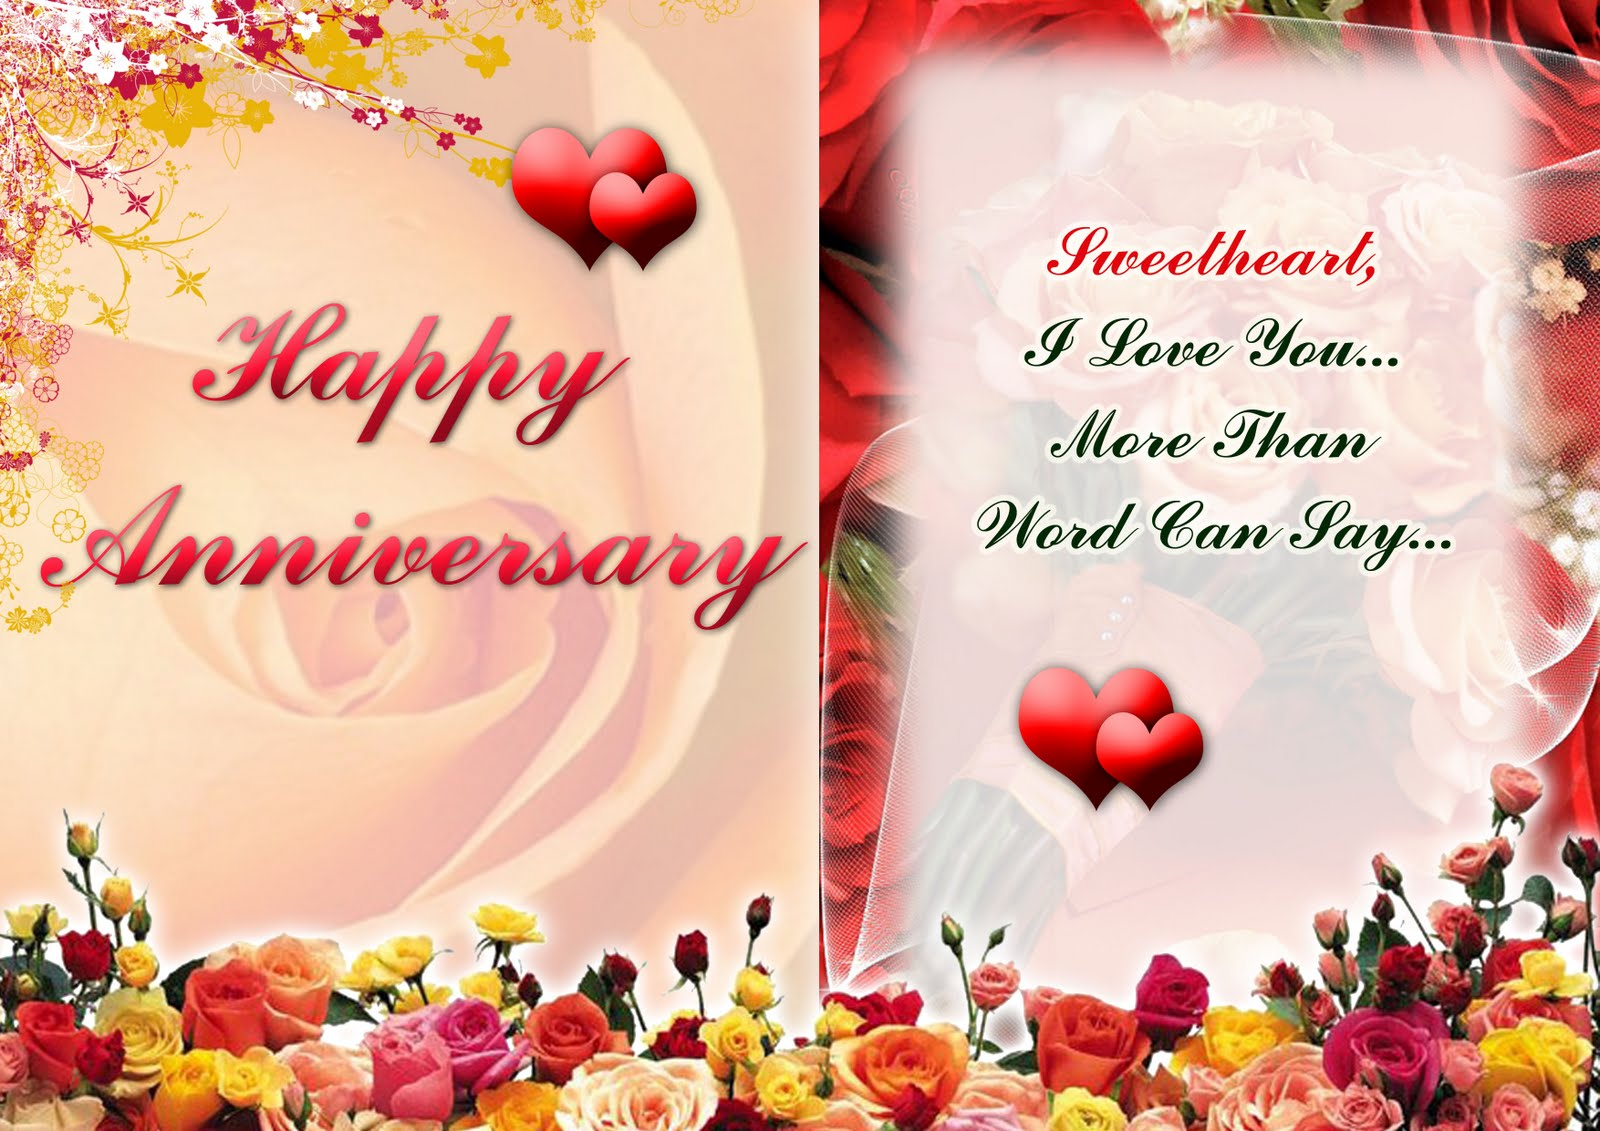 Funny anniversary wishes cartoons images